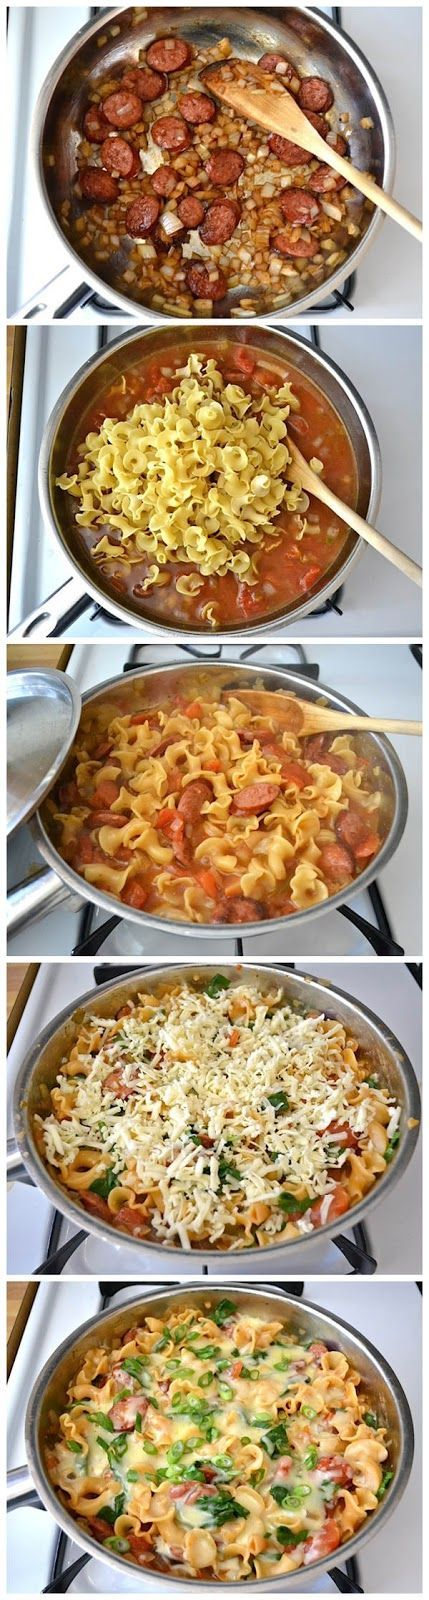 Sounds yummy and easy...might have to make this tonight :)